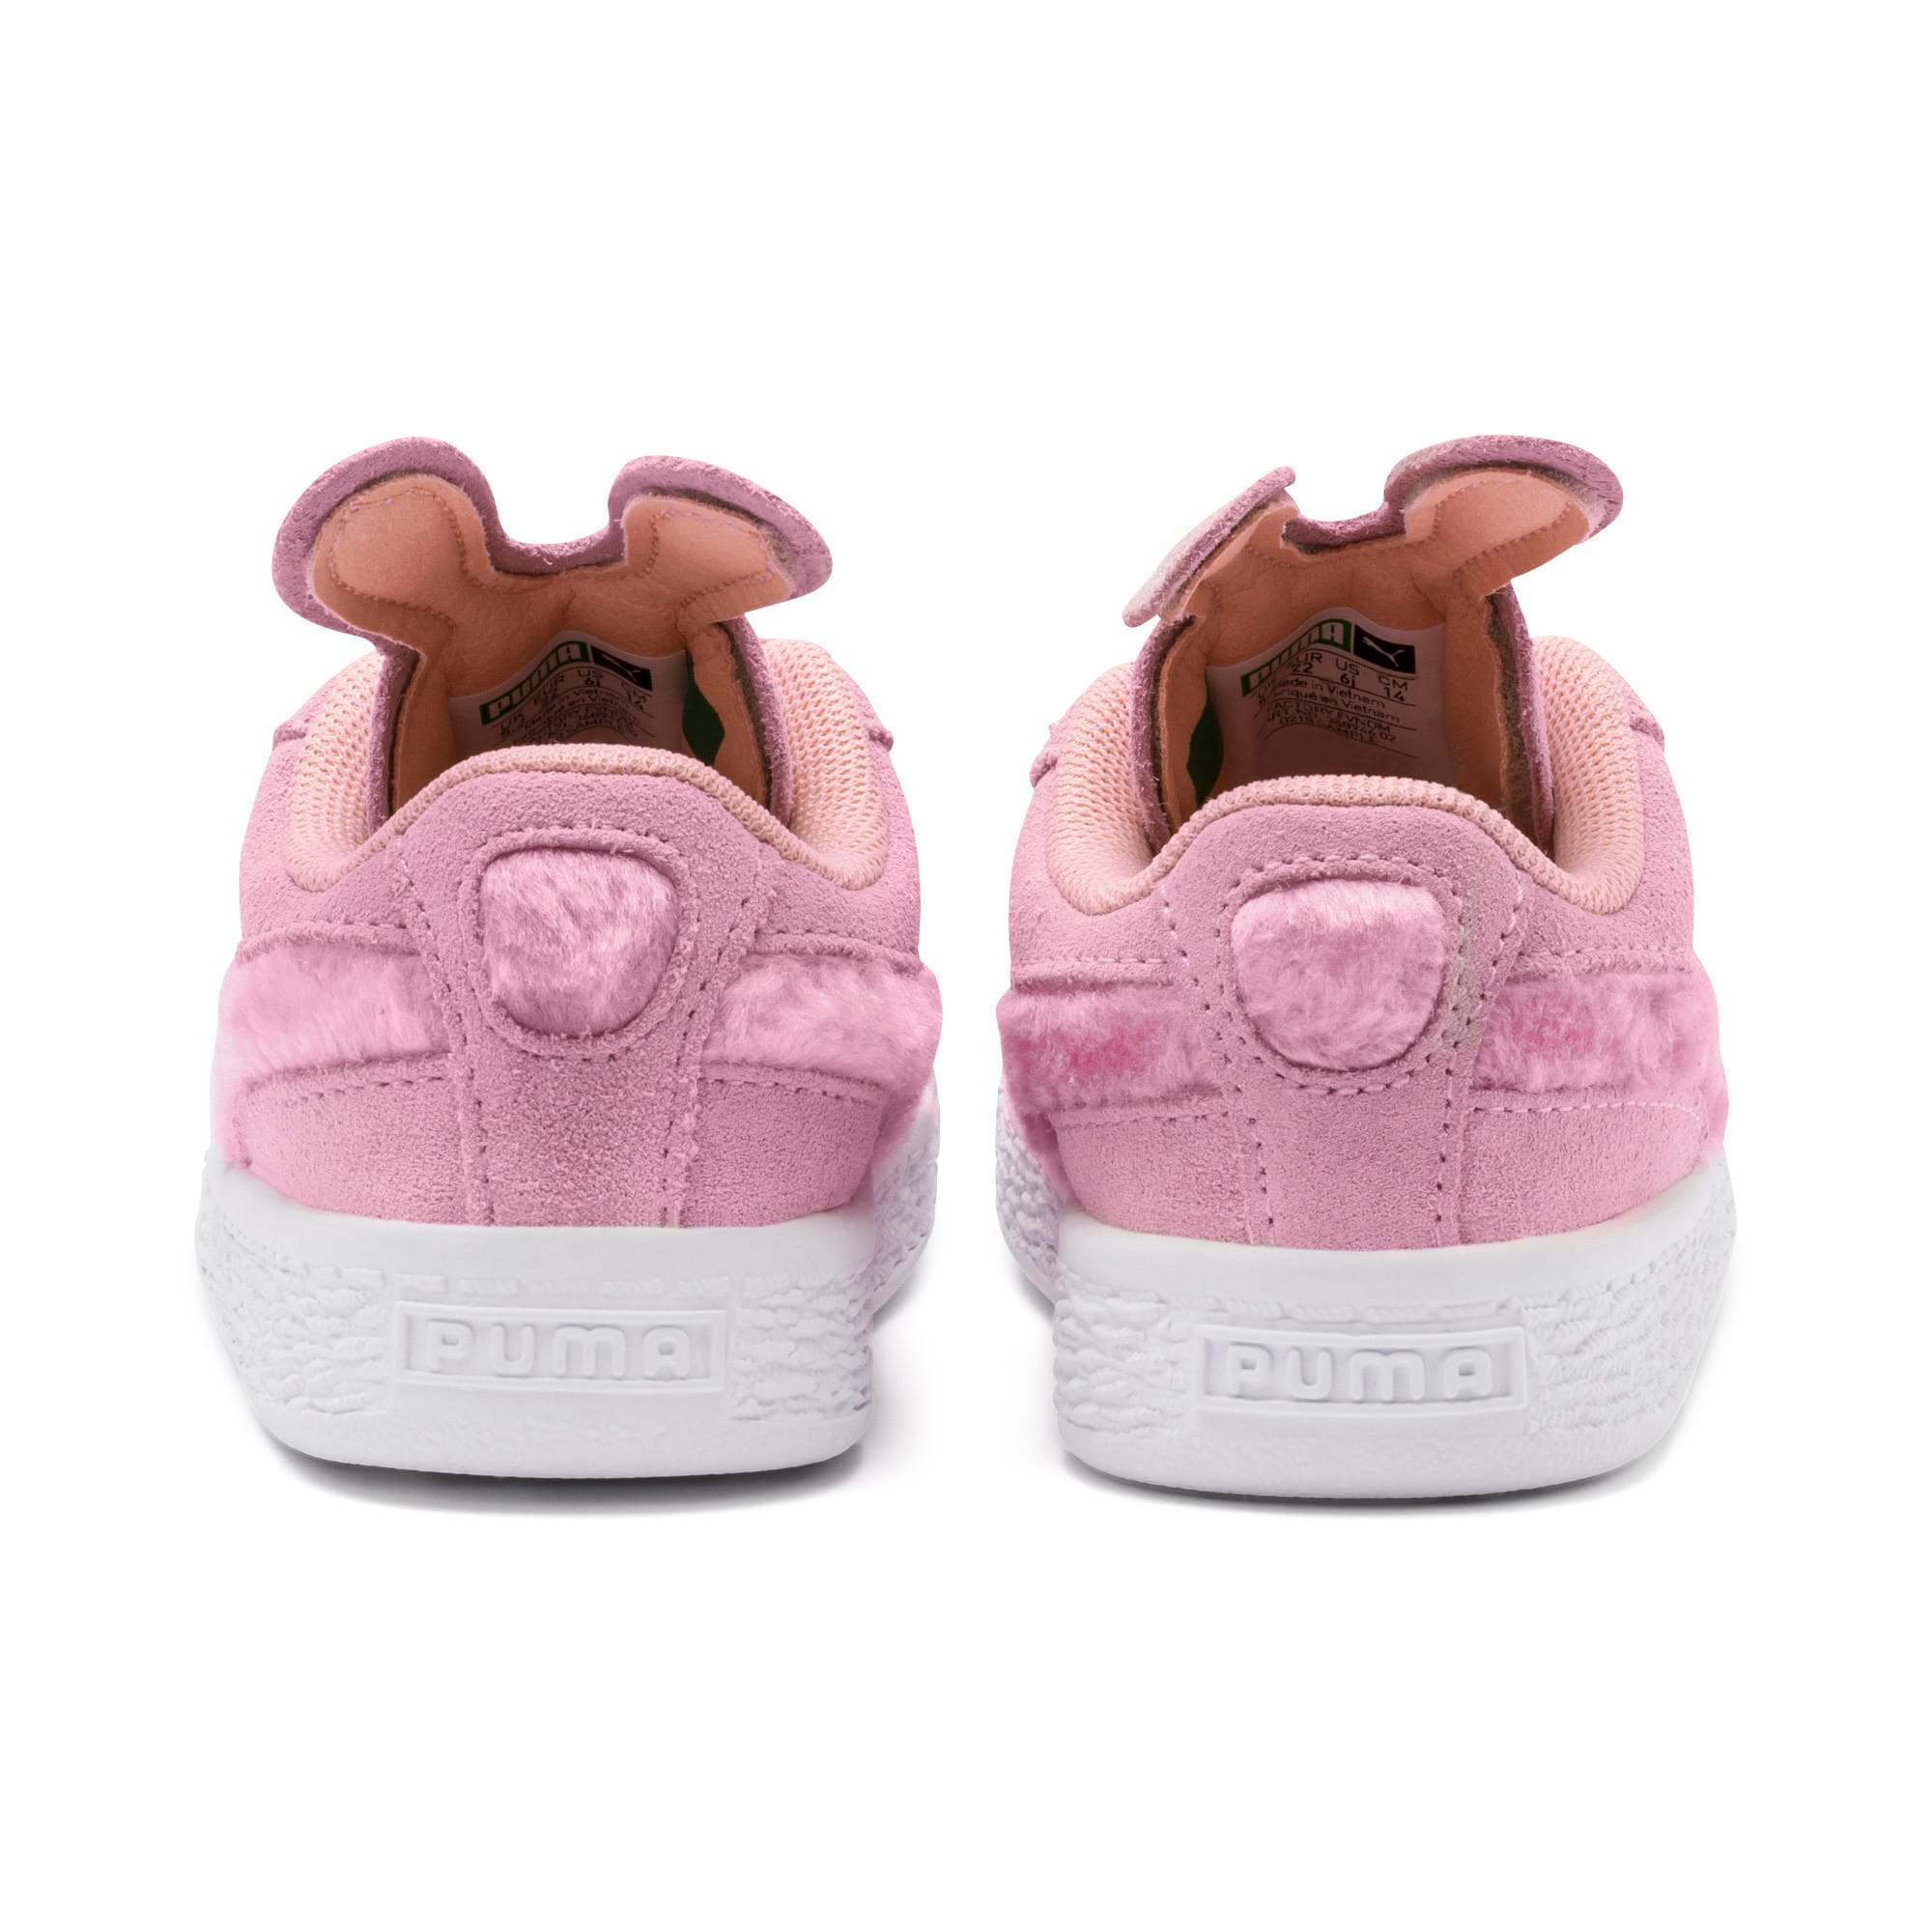 Thumbnail 3 of Suede Easter Kids' Trainers, Pale Pink-Coral Cloud, medium